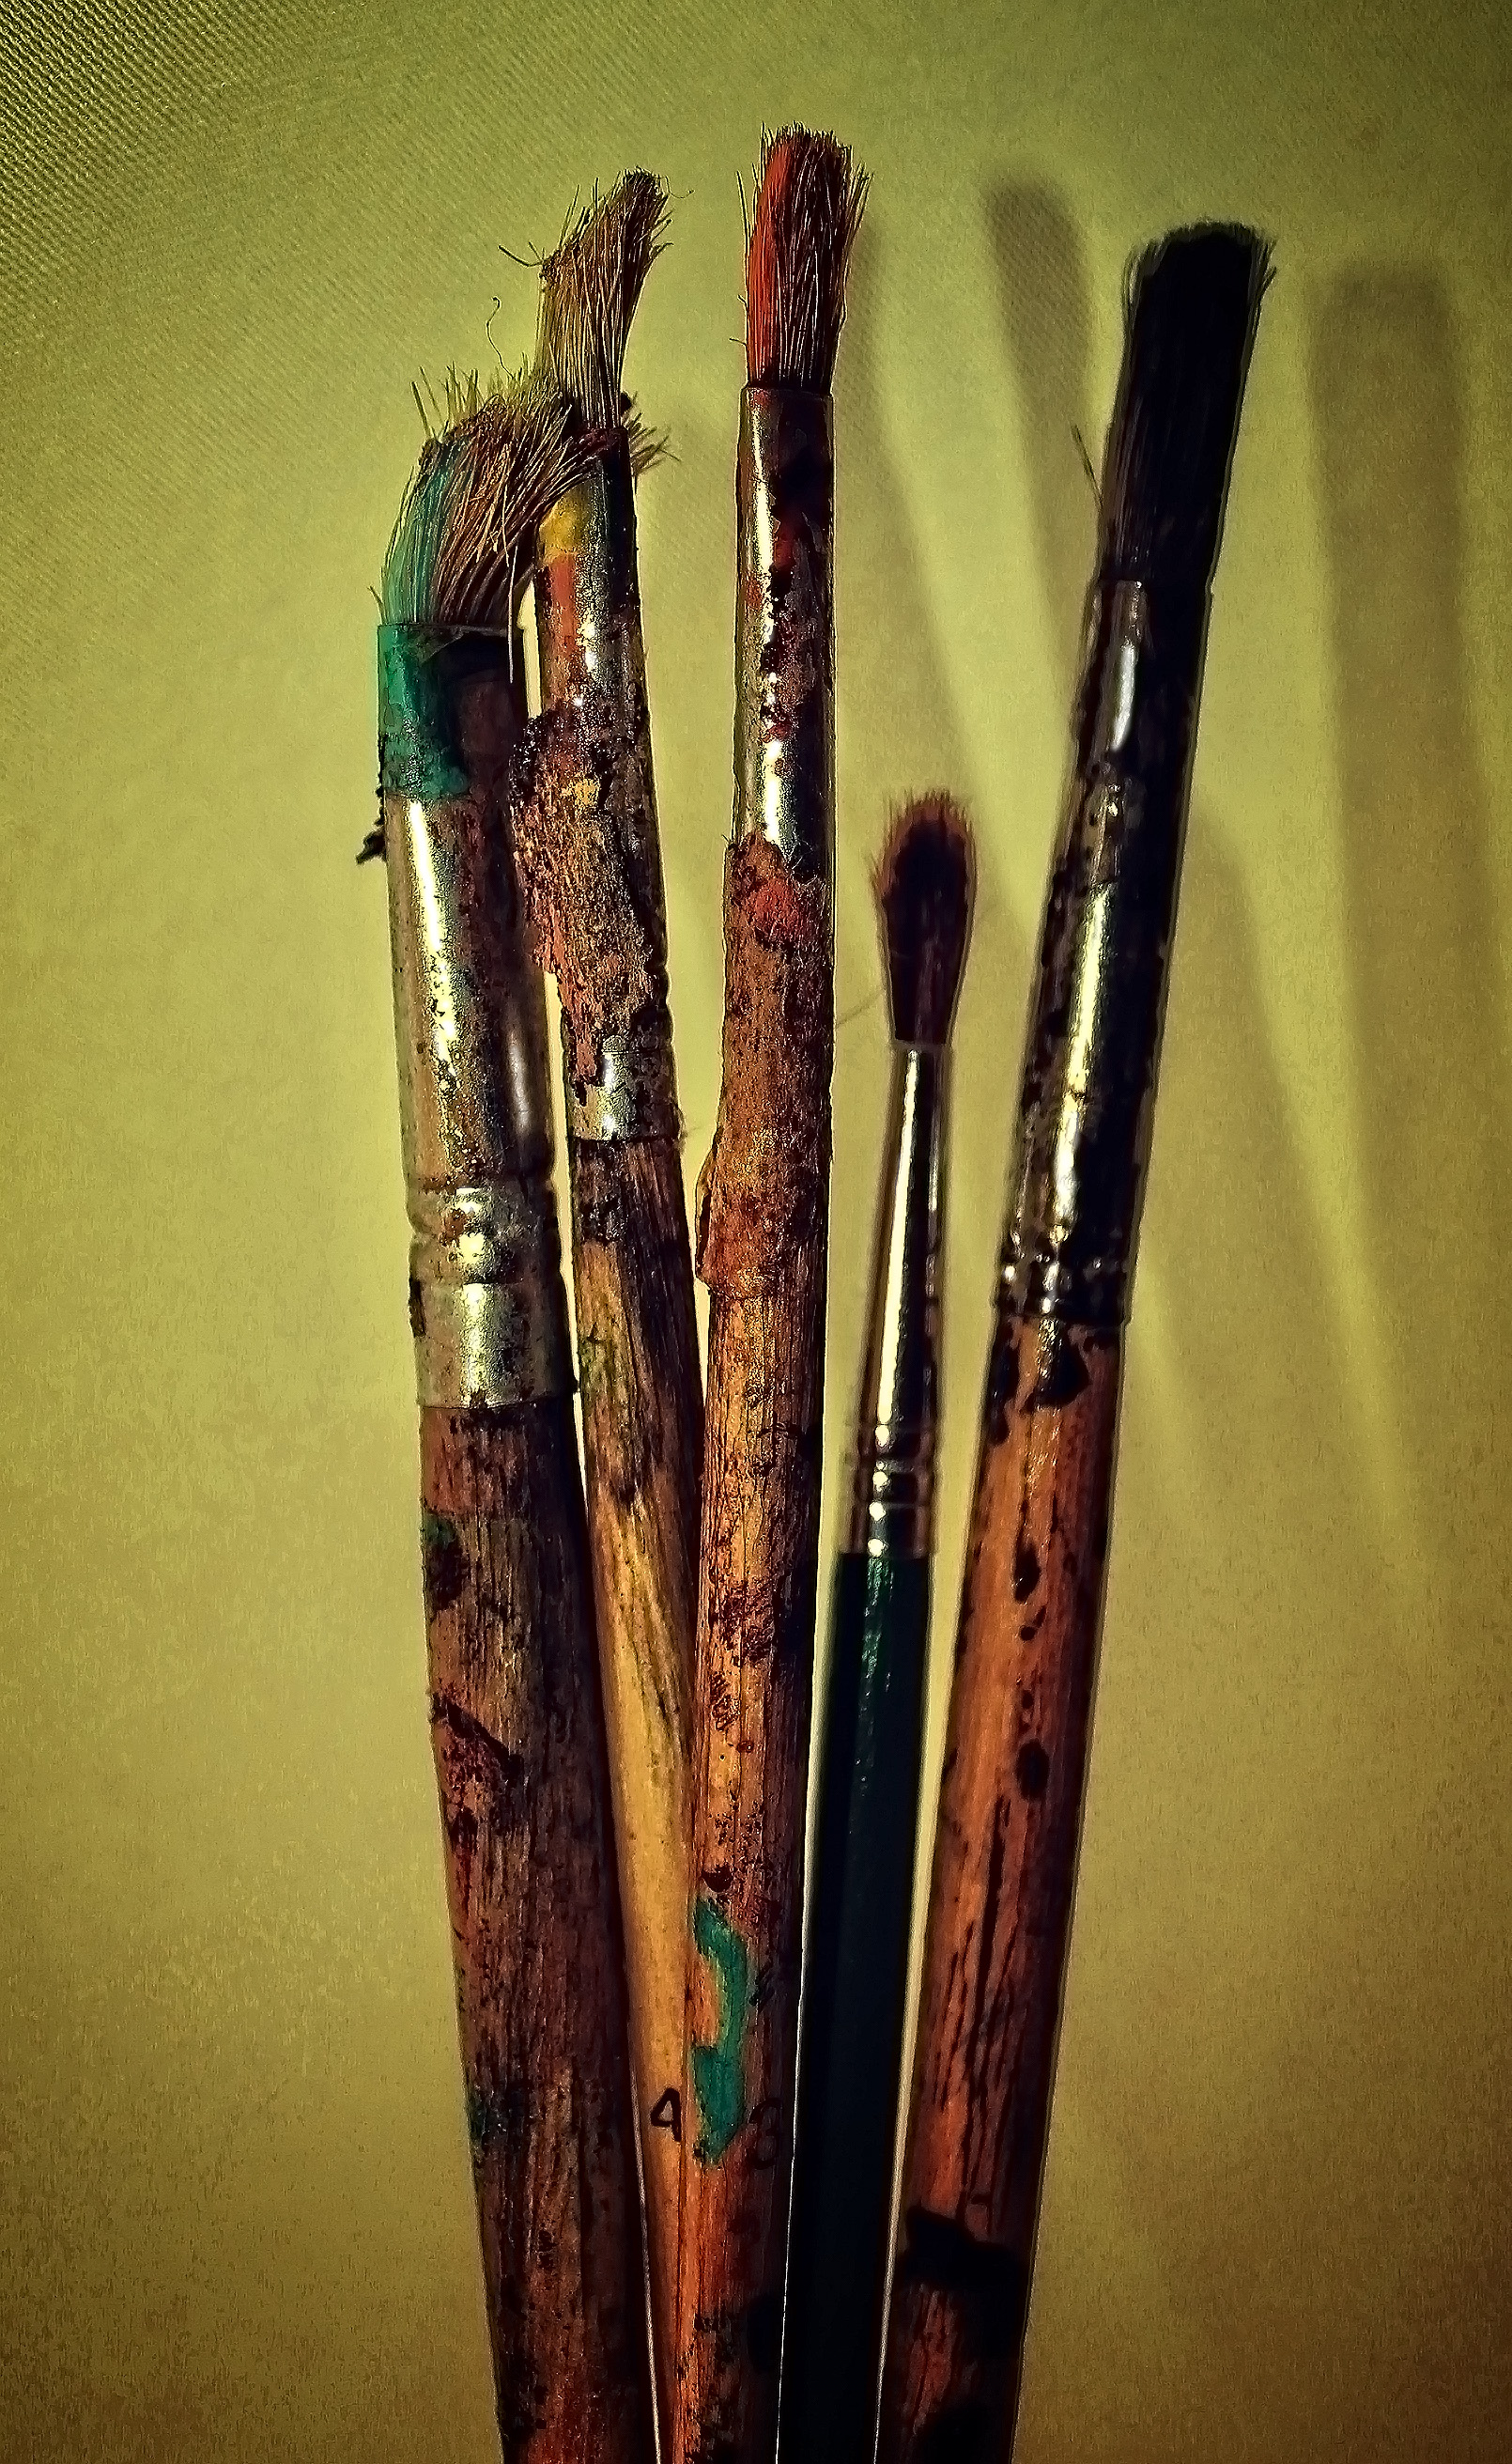 Used paintbrushes - noisy grunge looks photo